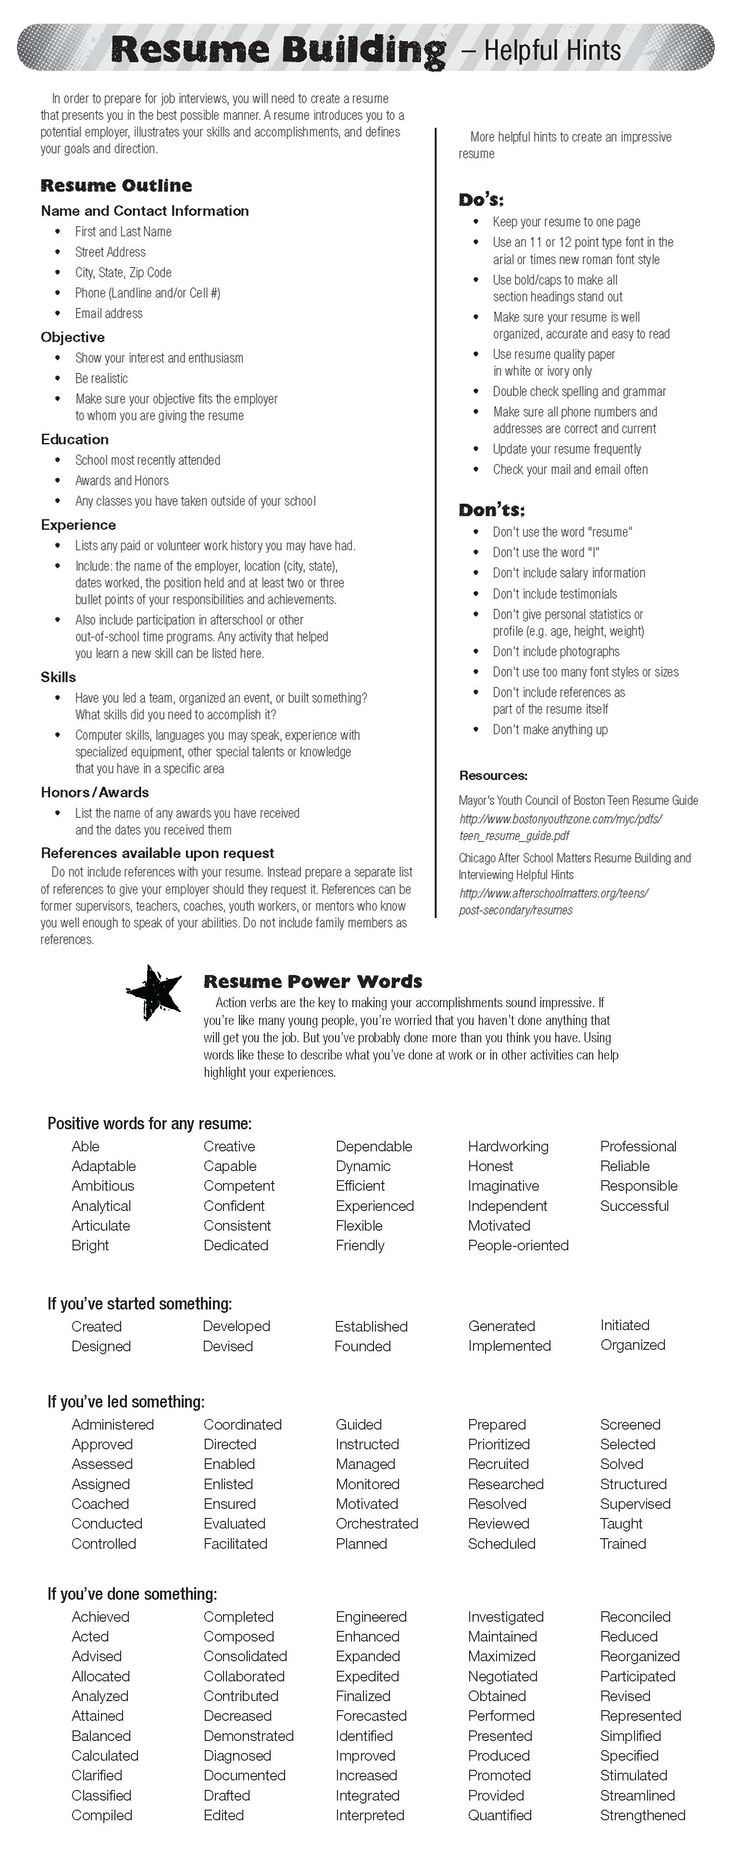 Opposenewapstandardsus  Winsome  Ideas About Resume On Pinterest  Cv Format Resume Cv And  With Remarkable  Ideas About Resume On Pinterest  Cv Format Resume Cv And Resume Templates With Lovely It Resume Cover Letter Also Free Printable Resume Examples In Addition Internal Job Resume And Manufacturing Resumes As Well As Resume Cashier Duties Additionally General Objective Statement For Resume From Pinterestcom With Opposenewapstandardsus  Remarkable  Ideas About Resume On Pinterest  Cv Format Resume Cv And  With Lovely  Ideas About Resume On Pinterest  Cv Format Resume Cv And Resume Templates And Winsome It Resume Cover Letter Also Free Printable Resume Examples In Addition Internal Job Resume From Pinterestcom